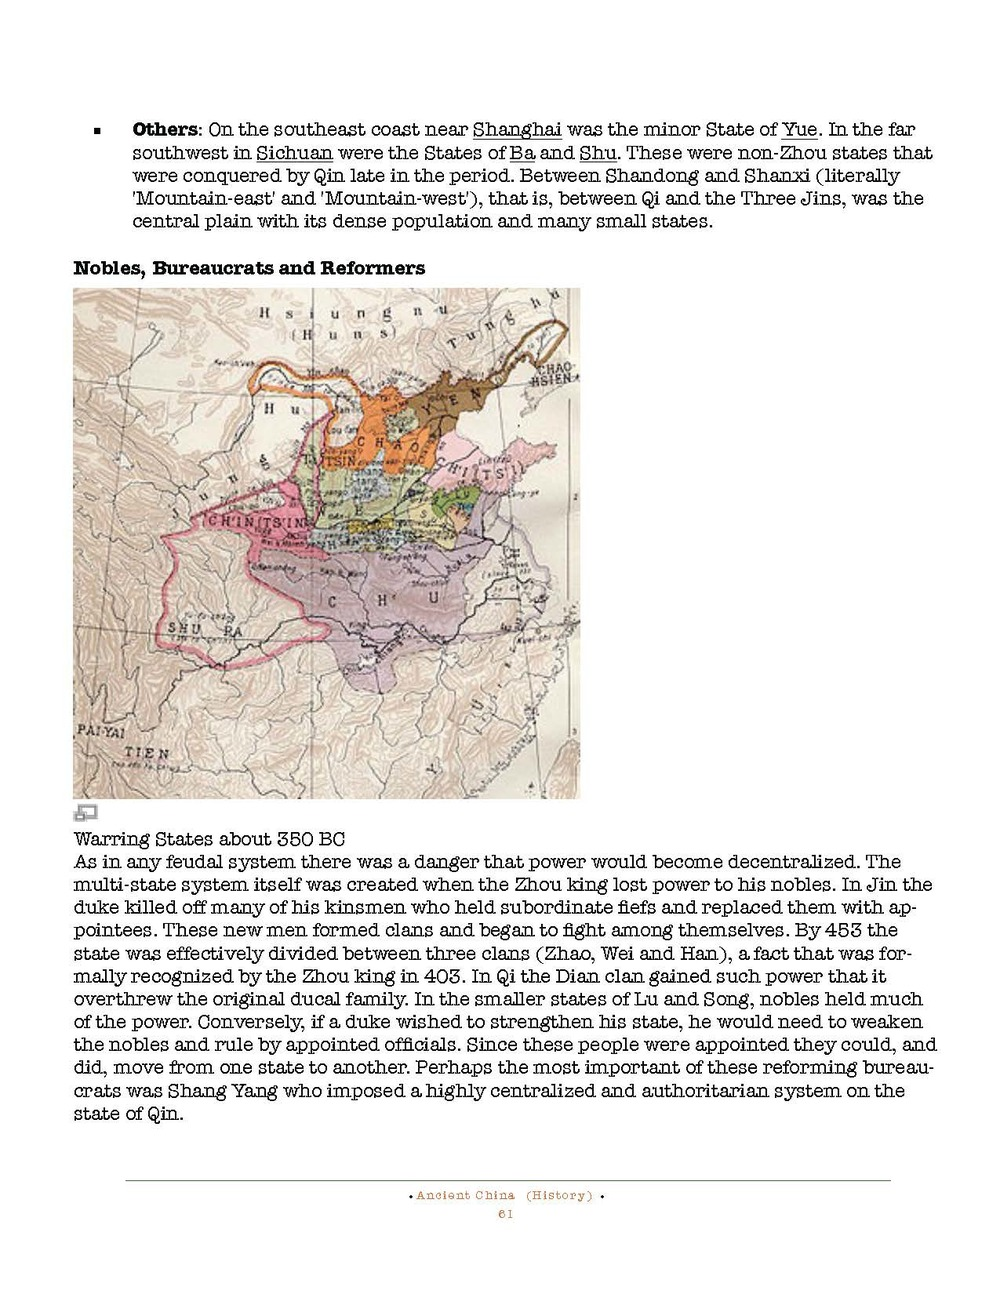 HOCE- Ancient China Notes_Page_061.jpg